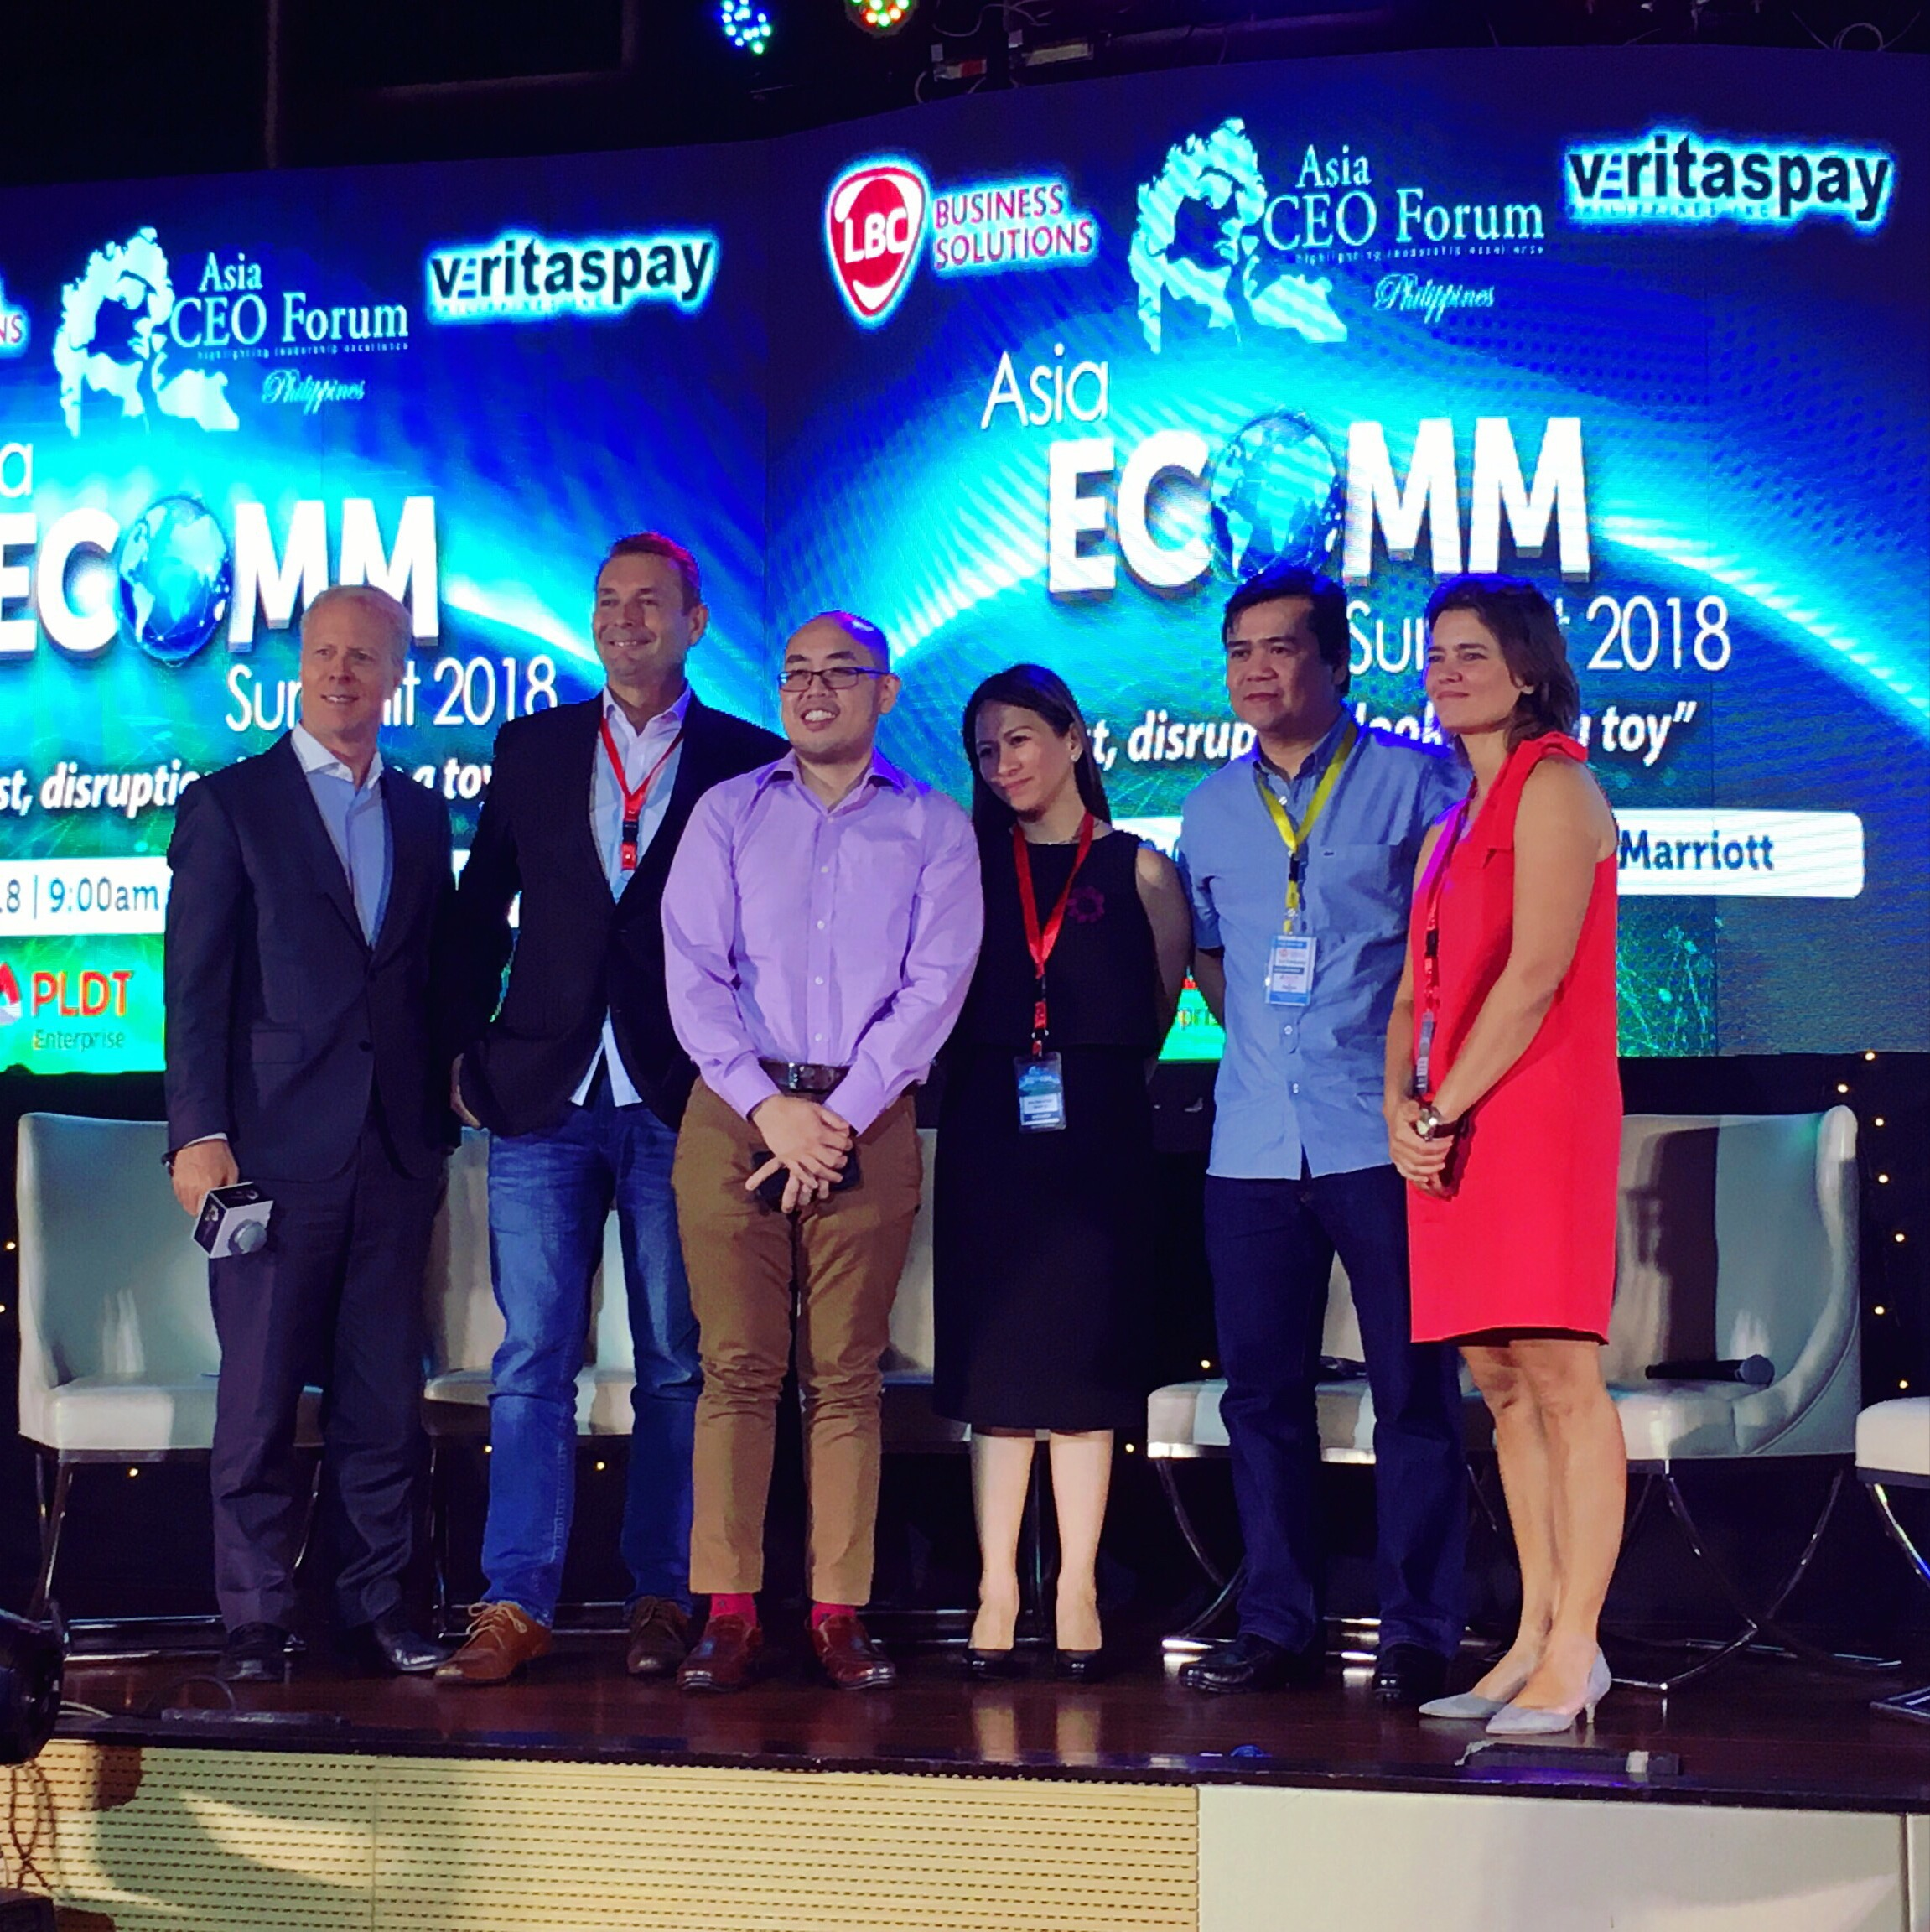 LBC, Asia CEO spearhead 1st Asia ECOMM Summit